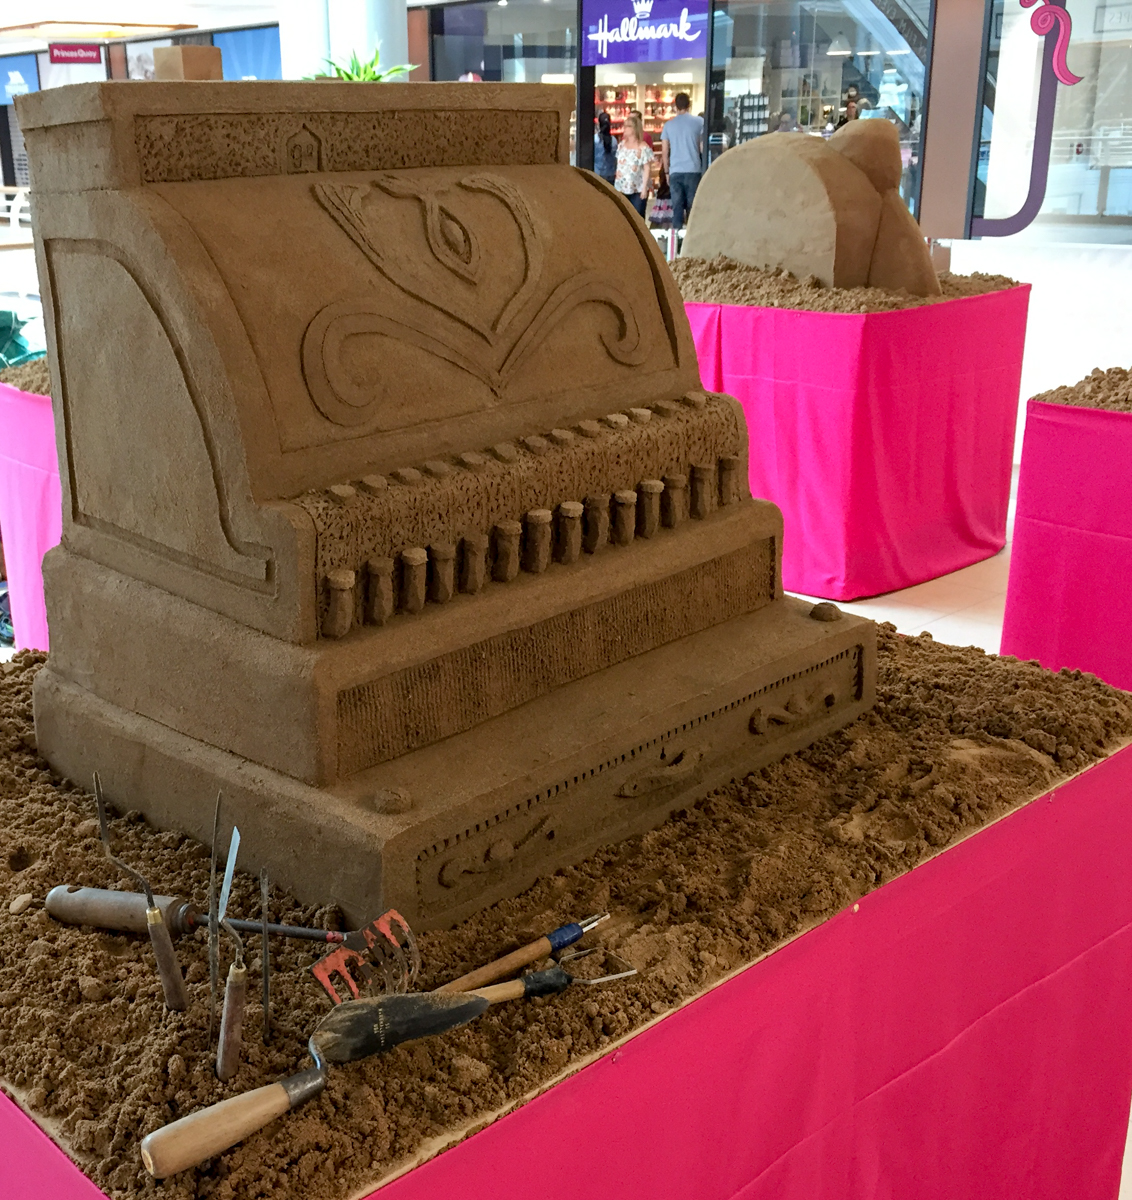 antique till shopping centre sand Sculptures semi perminant display ideas